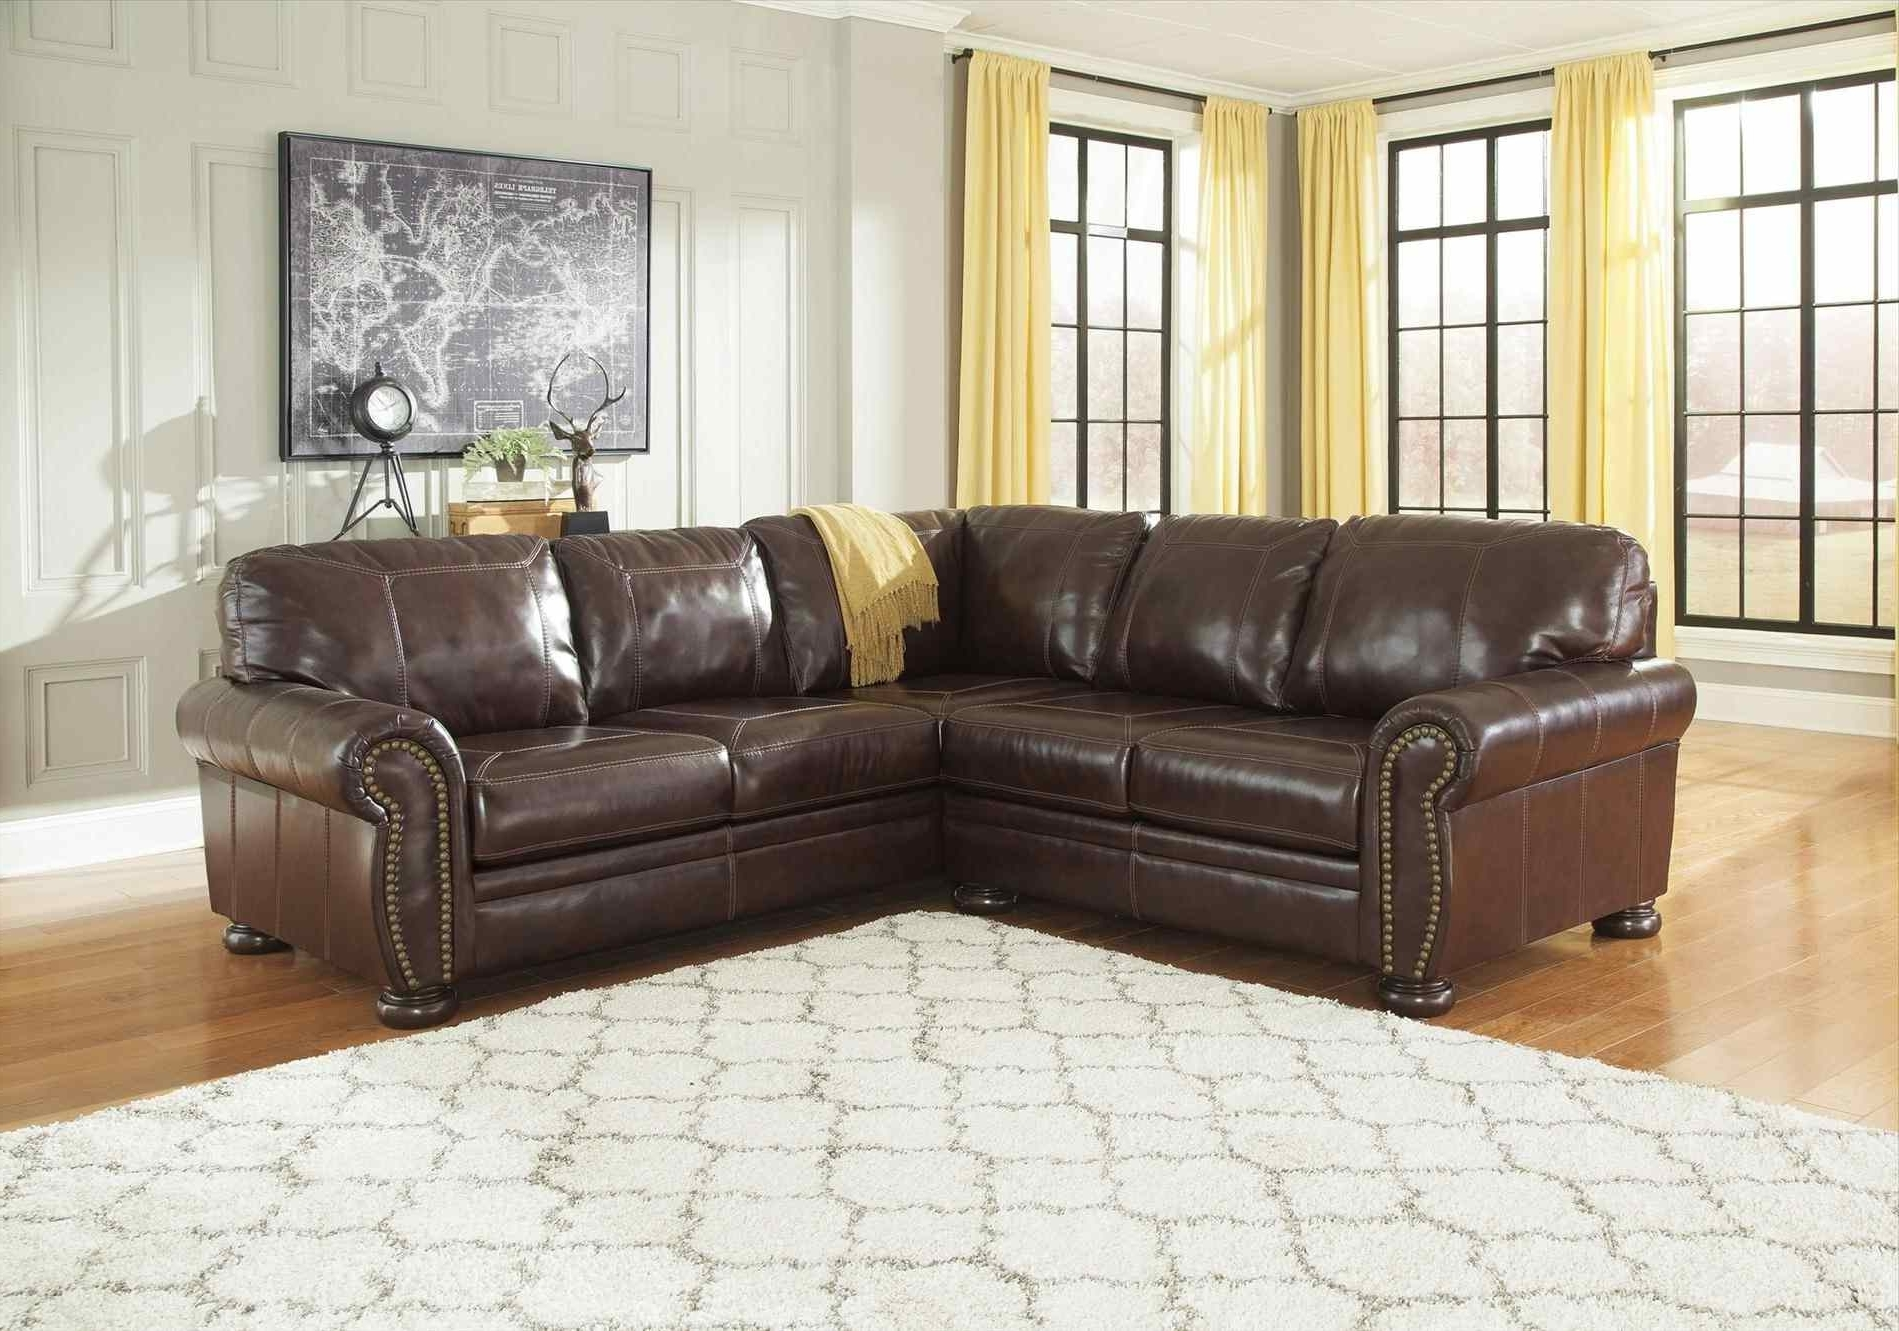 Nj Sectional Sofas In Popular Couch : Genuine Leather Couches Kramfors Lshape Sectional Youtube (View 14 of 20)